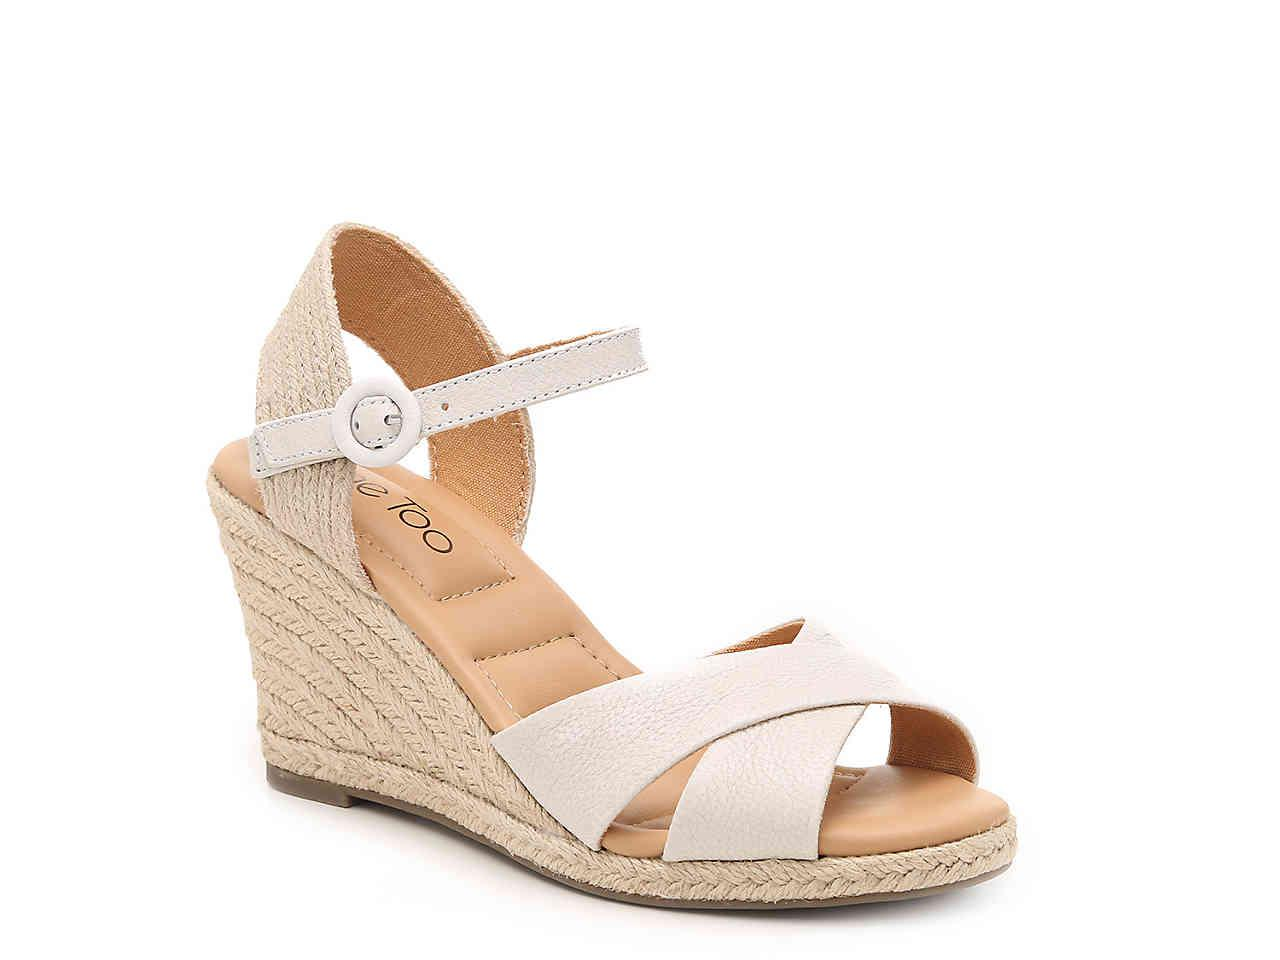 33d6ed720ab Lyst - Me Too Bettina Espadrille Wedge Sandal in White